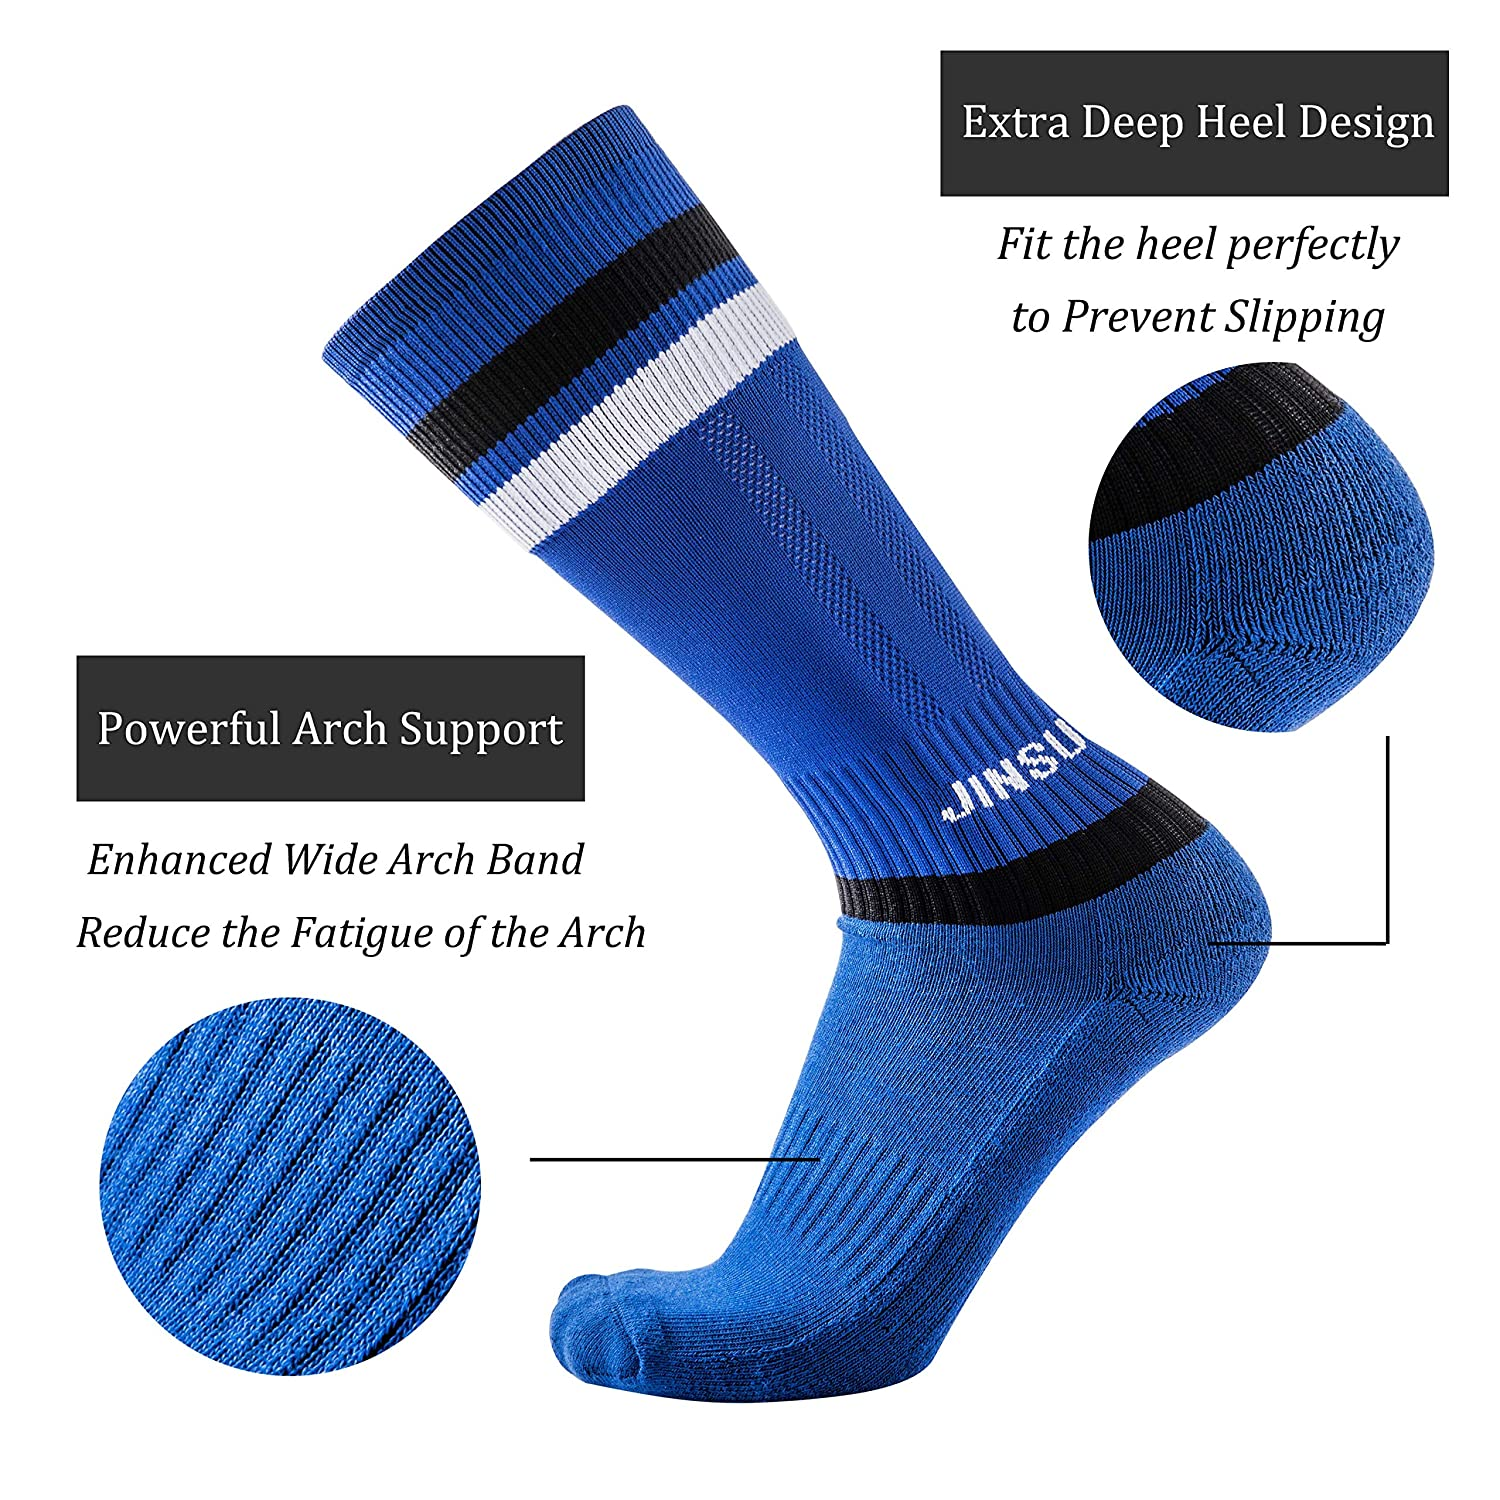 CHICING Mens Athletic High-Performance Crew Sock Cushion Moisture Wicking Comfort Fit 2 Pack